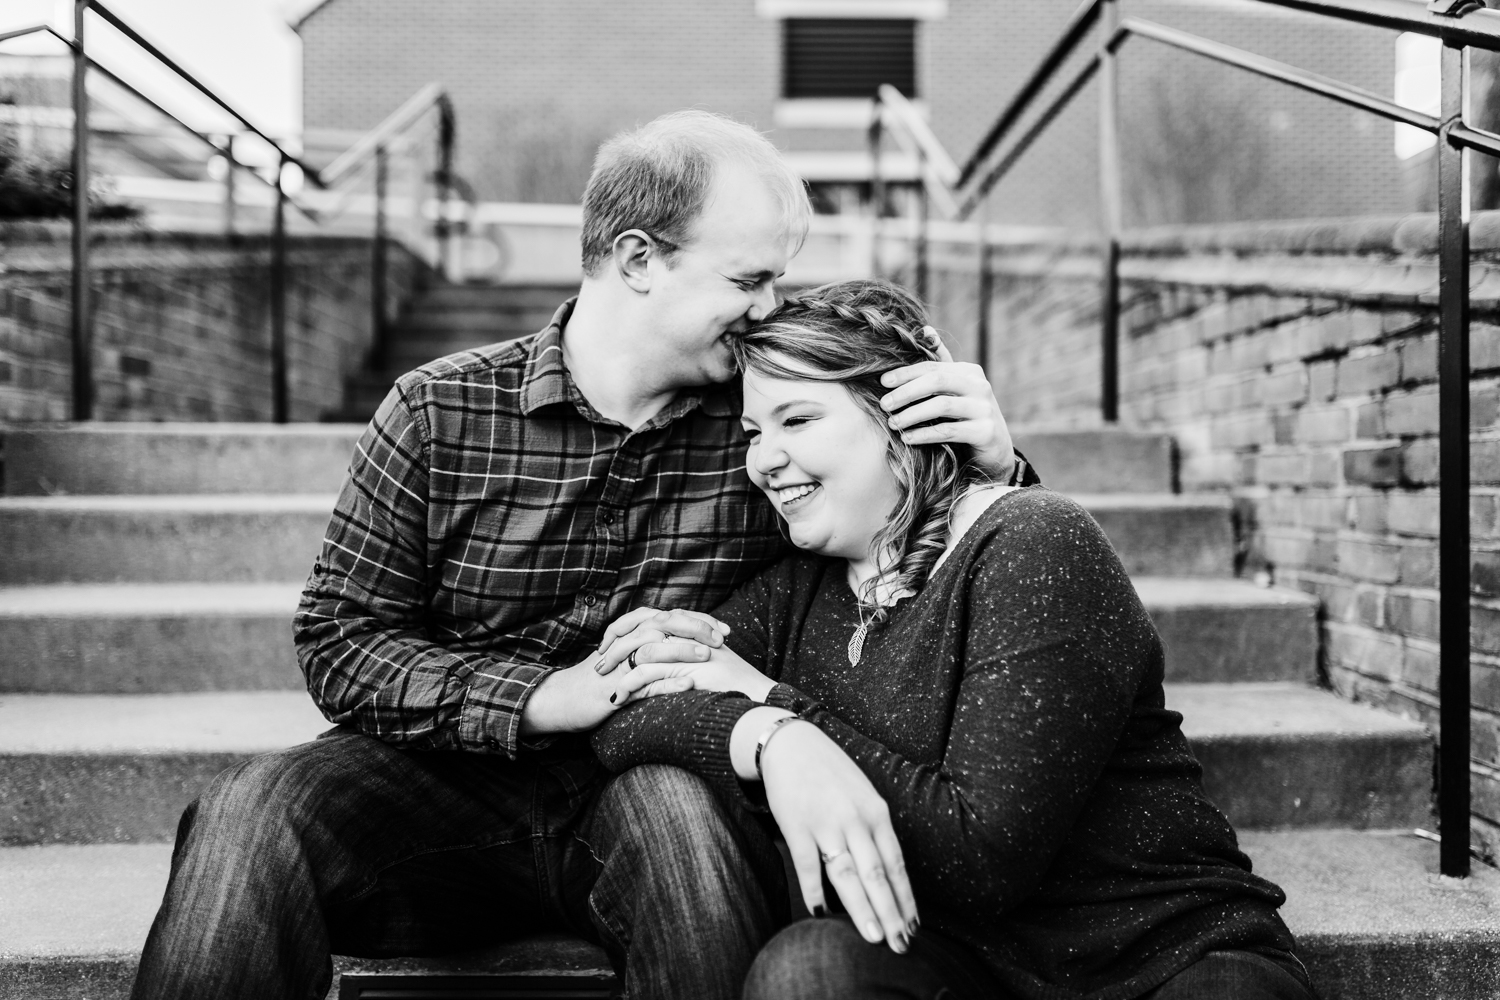 Sweet couple sharing intimate moment - best photographer in Frederick, MD